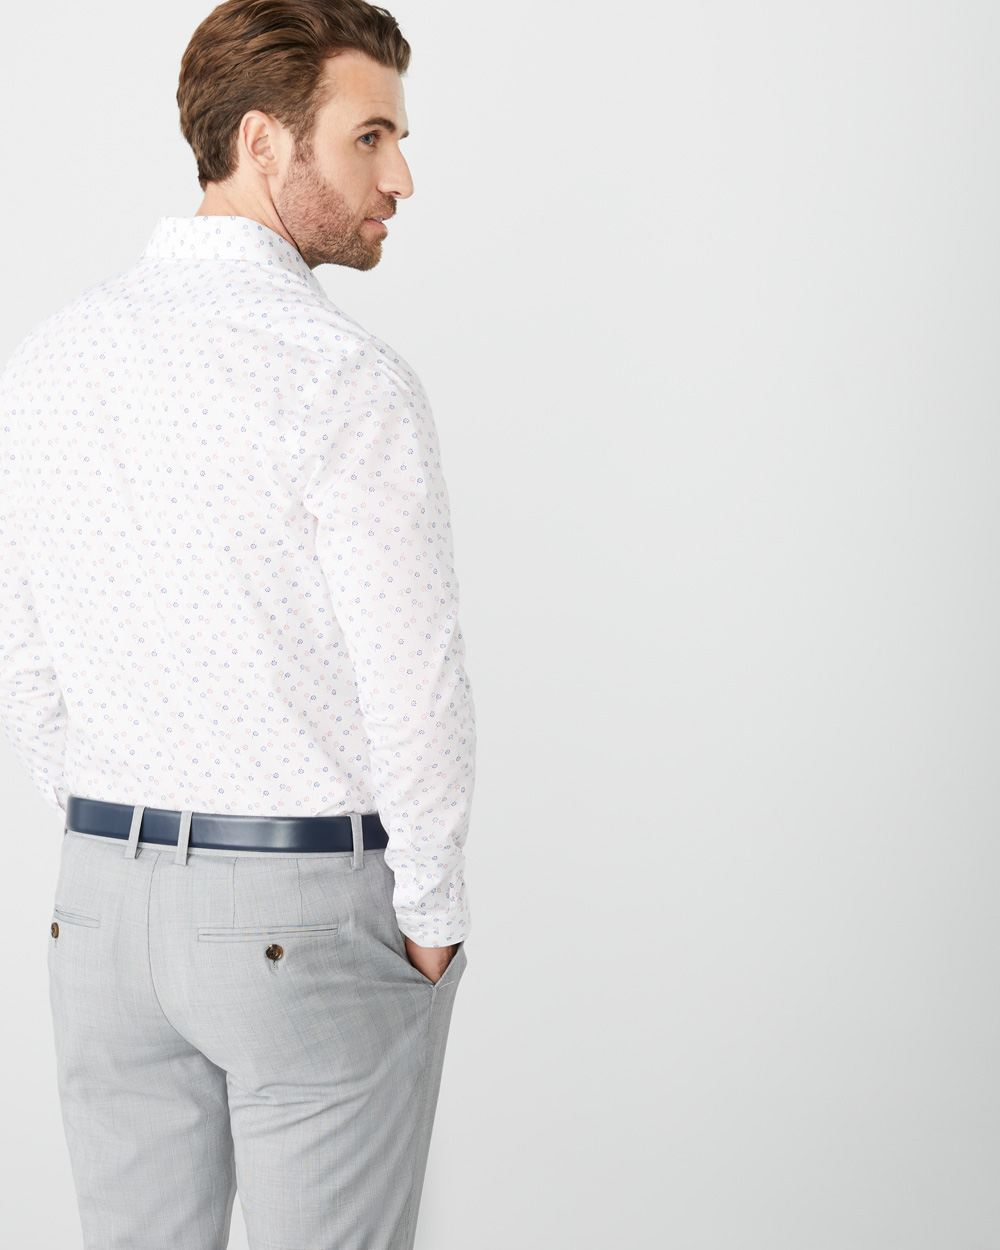 Slim Fit two-tone floral dress shirt